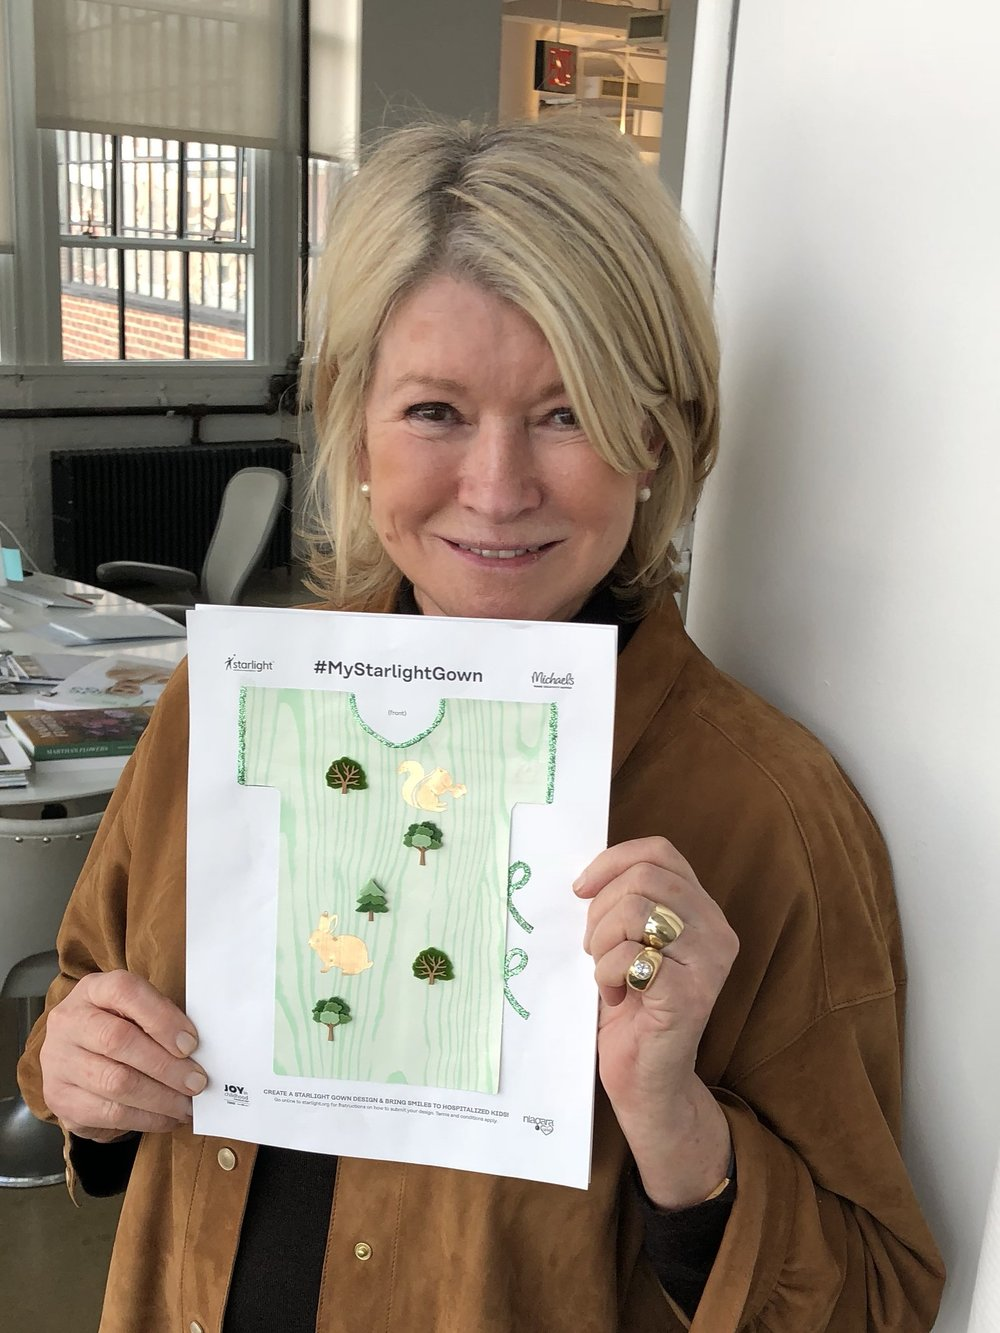 Martha Stewart and her Starlight Gown design.